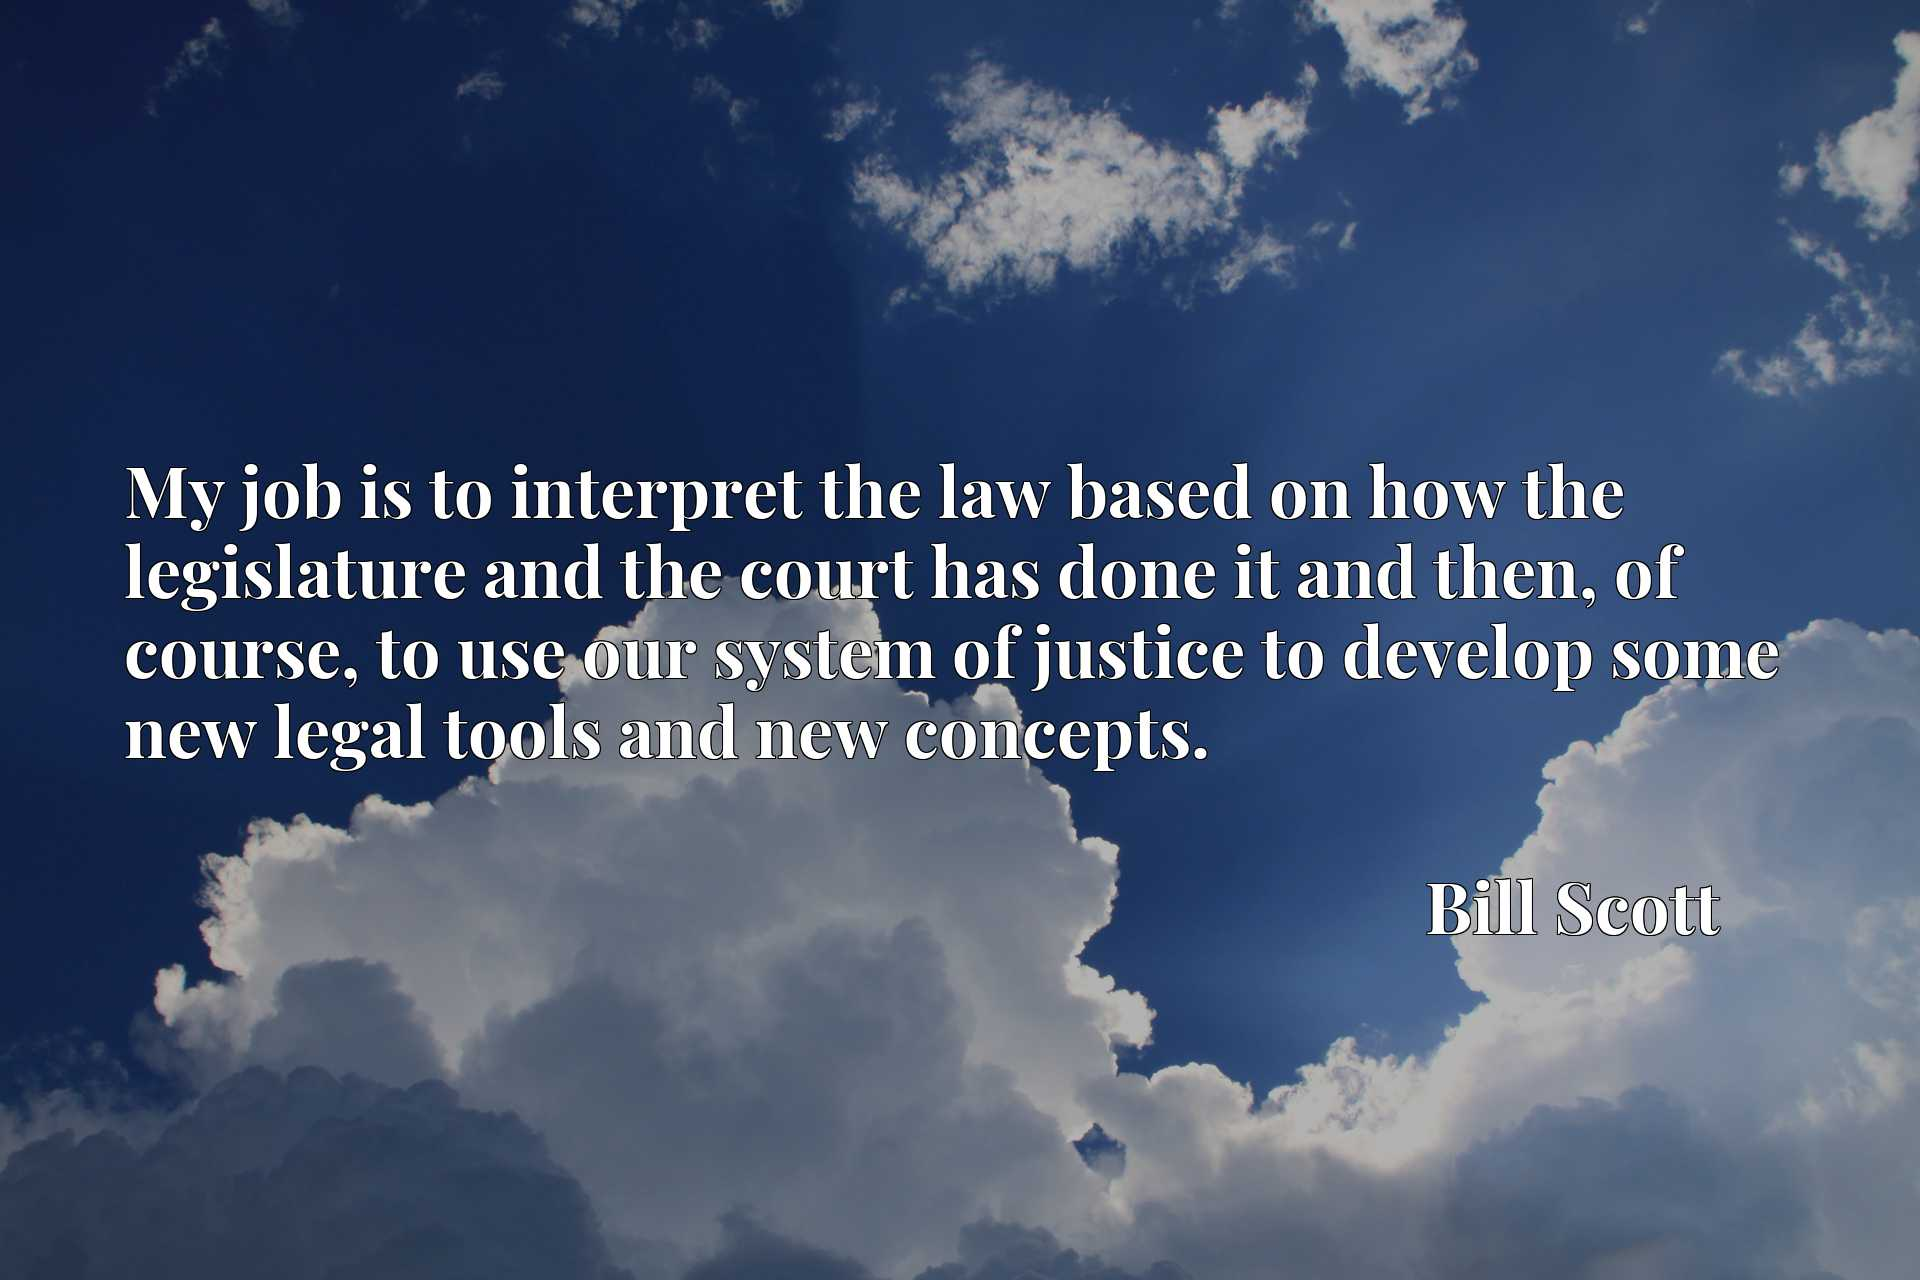 My job is to interpret the law based on how the legislature and the court has done it and then, of course, to use our system of justice to develop some new legal tools and new concepts.